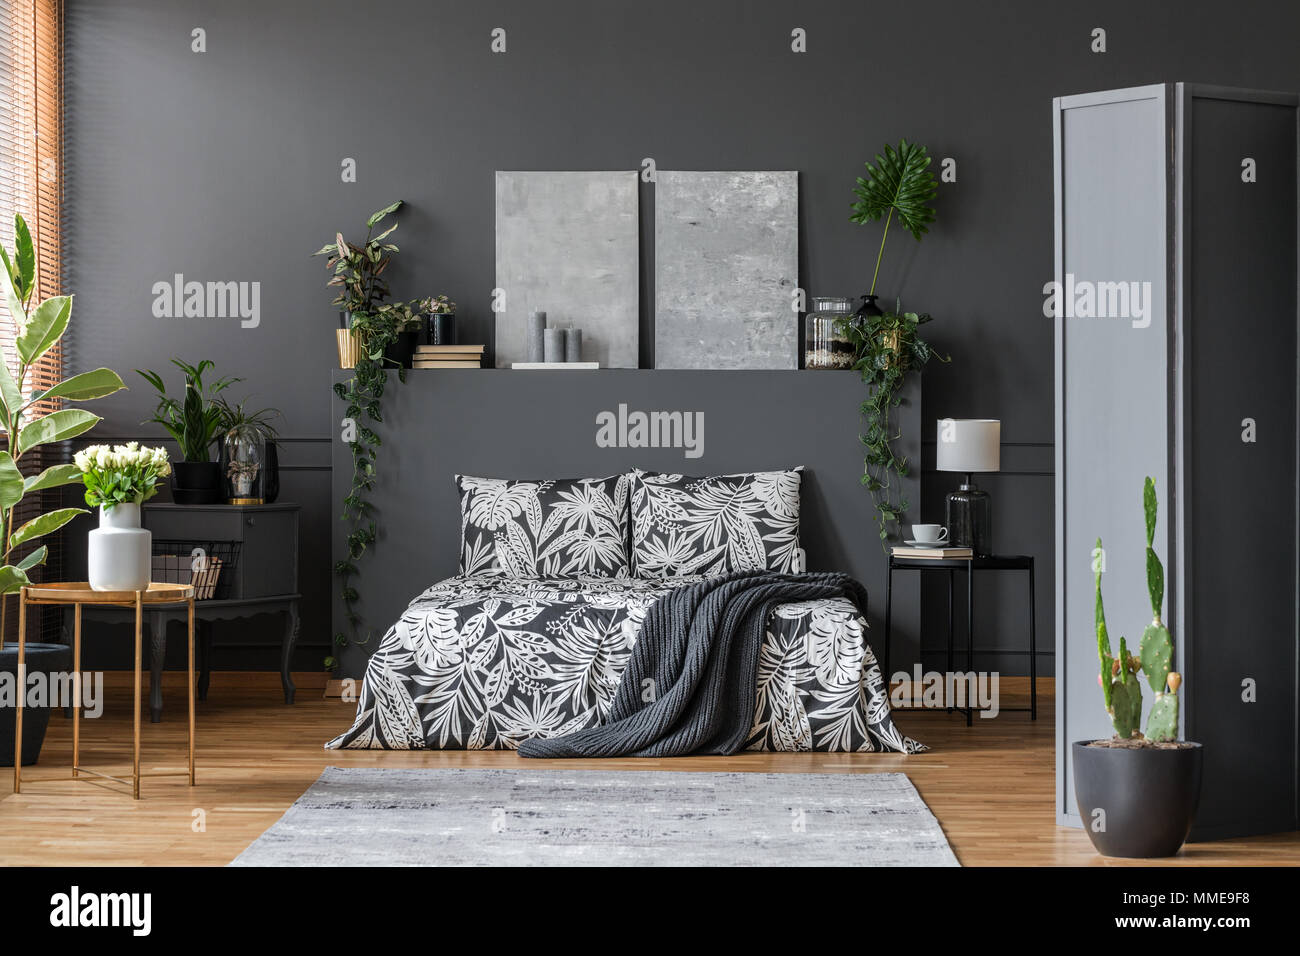 Floral Pattern Black Bedding In A Stylish Dark Gray Bedroom